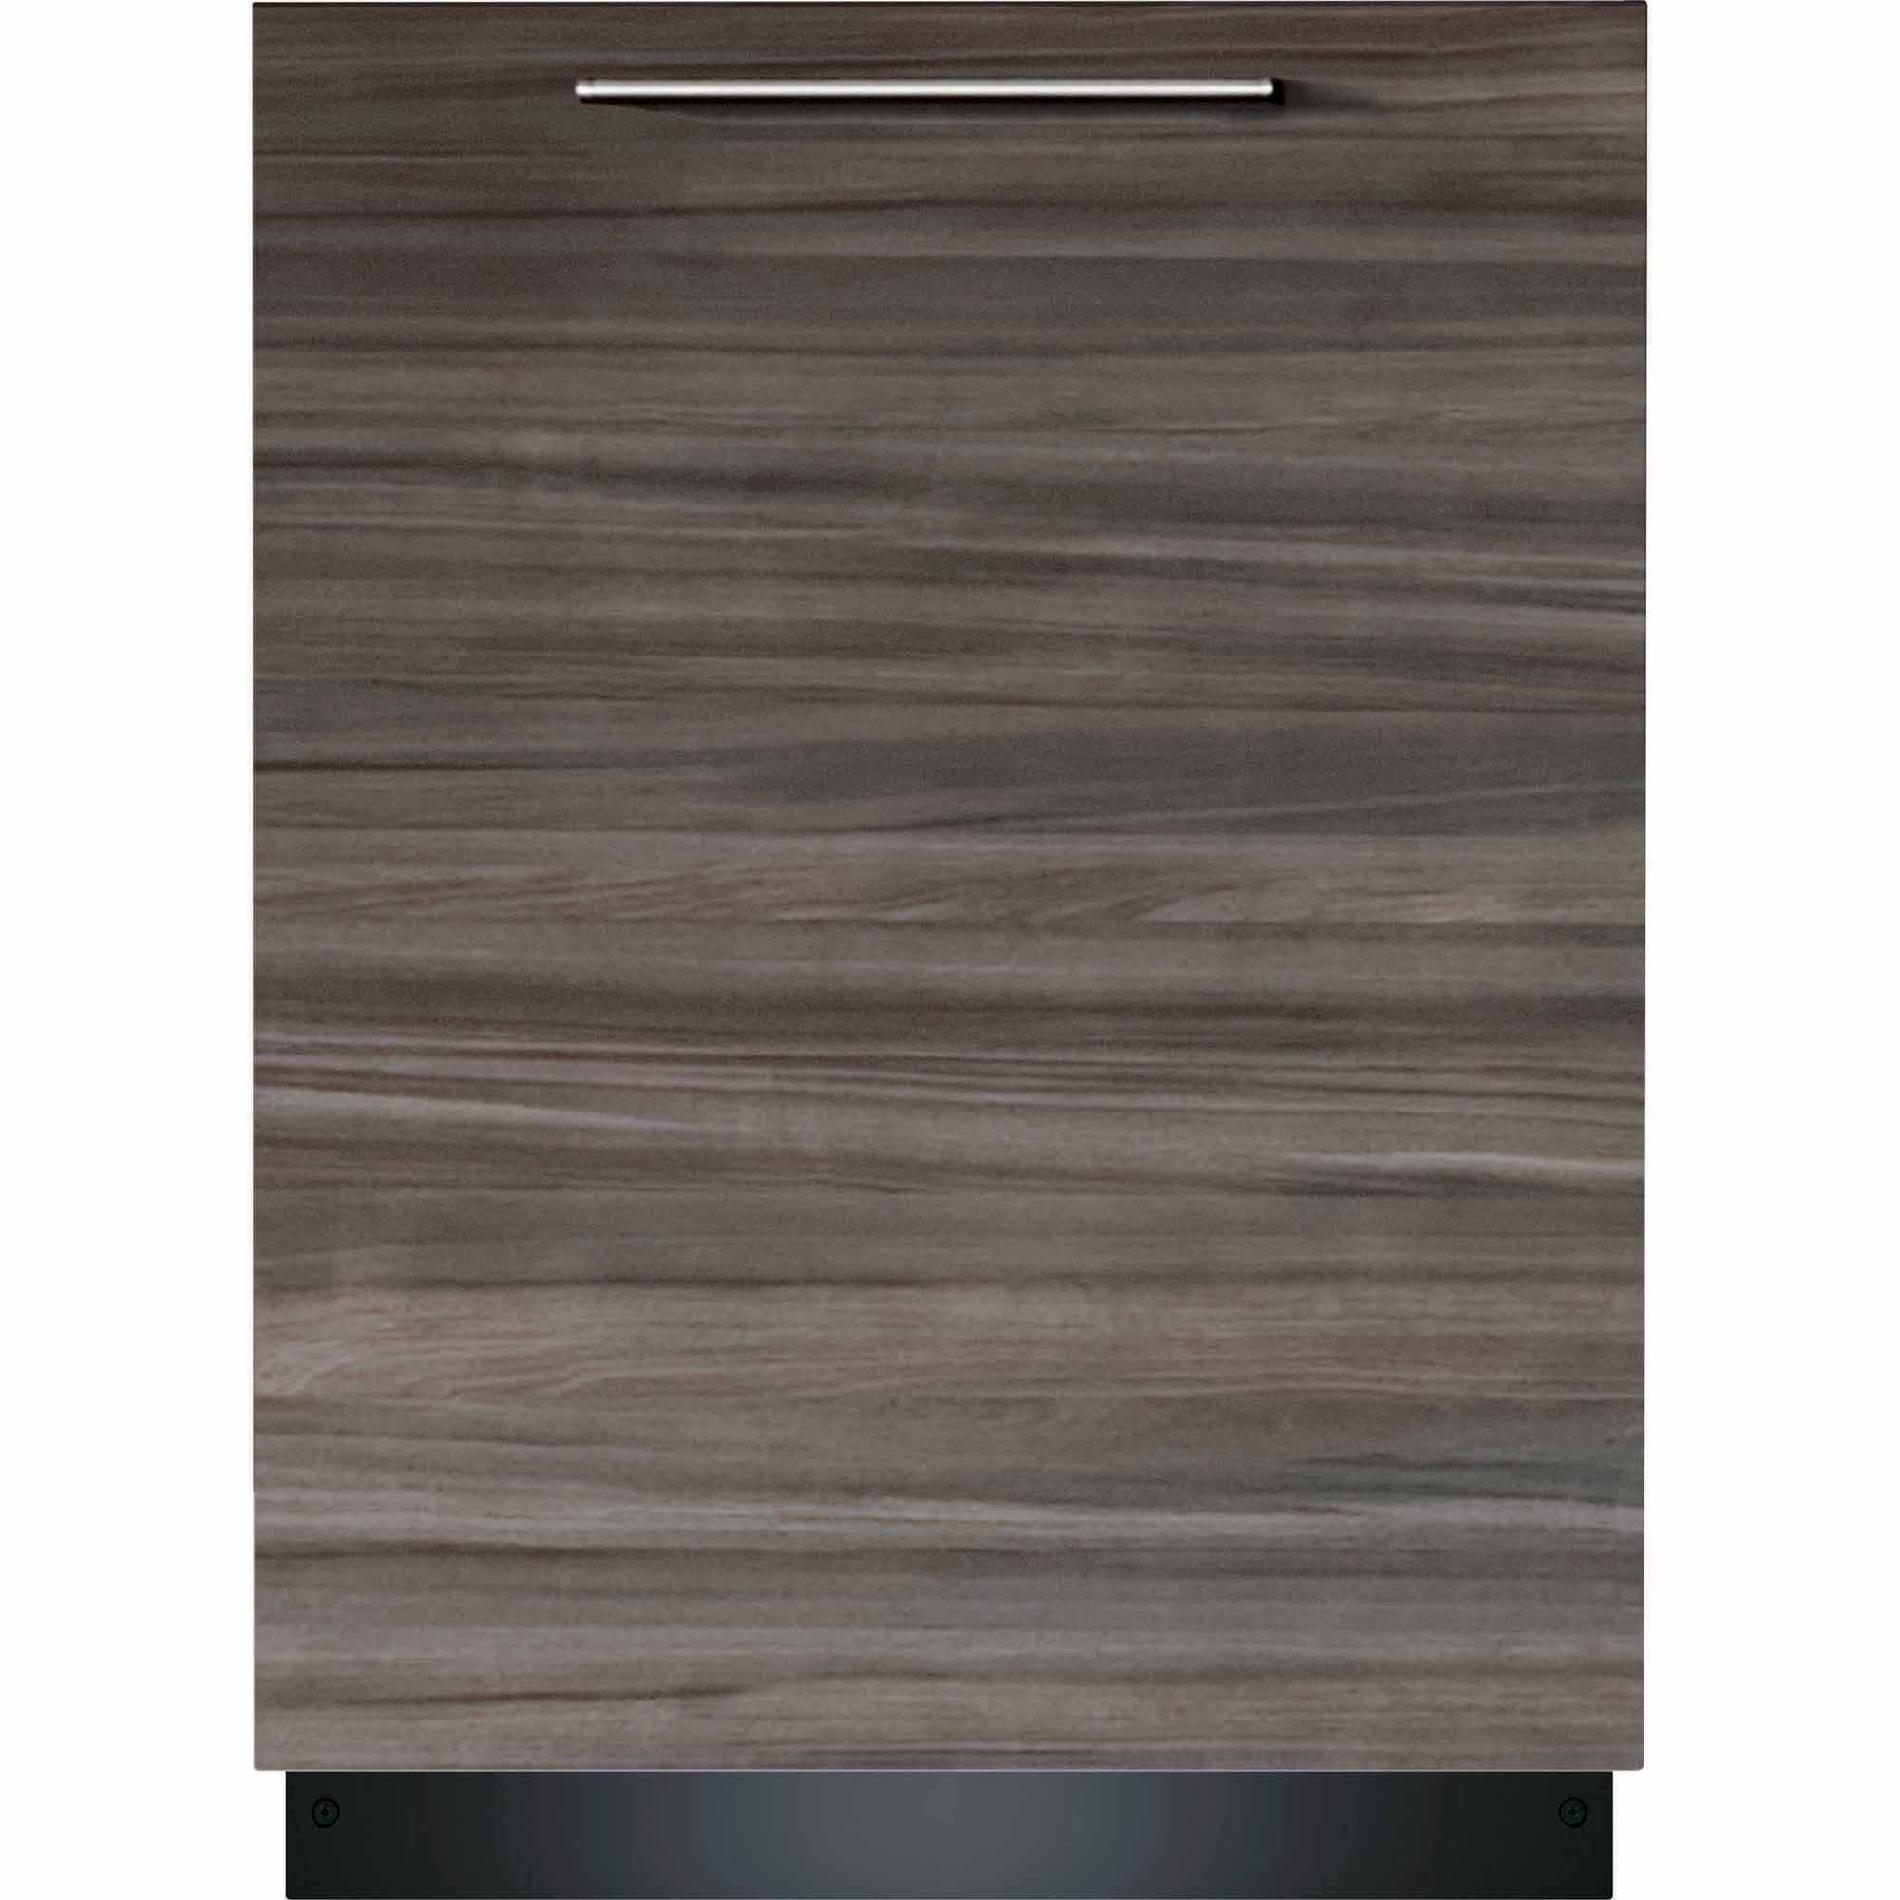 Electrolux EW24ID70QT 70 Series 24 Built-In Dishwasher - Panel Ready